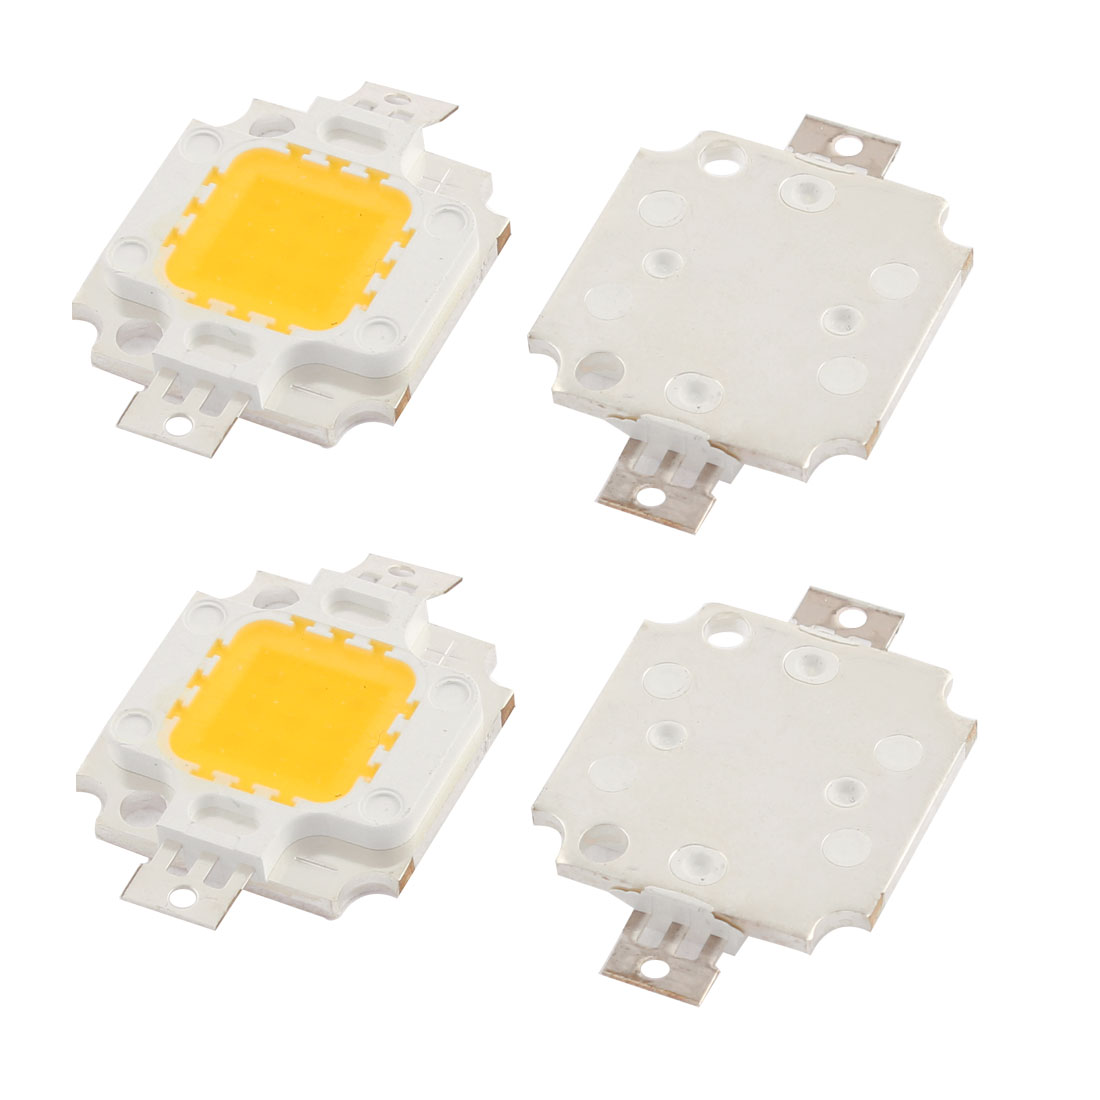 Warm White 10W 850-900LM High Power LED SMD Chip Light Lamp Bead 4 PCS